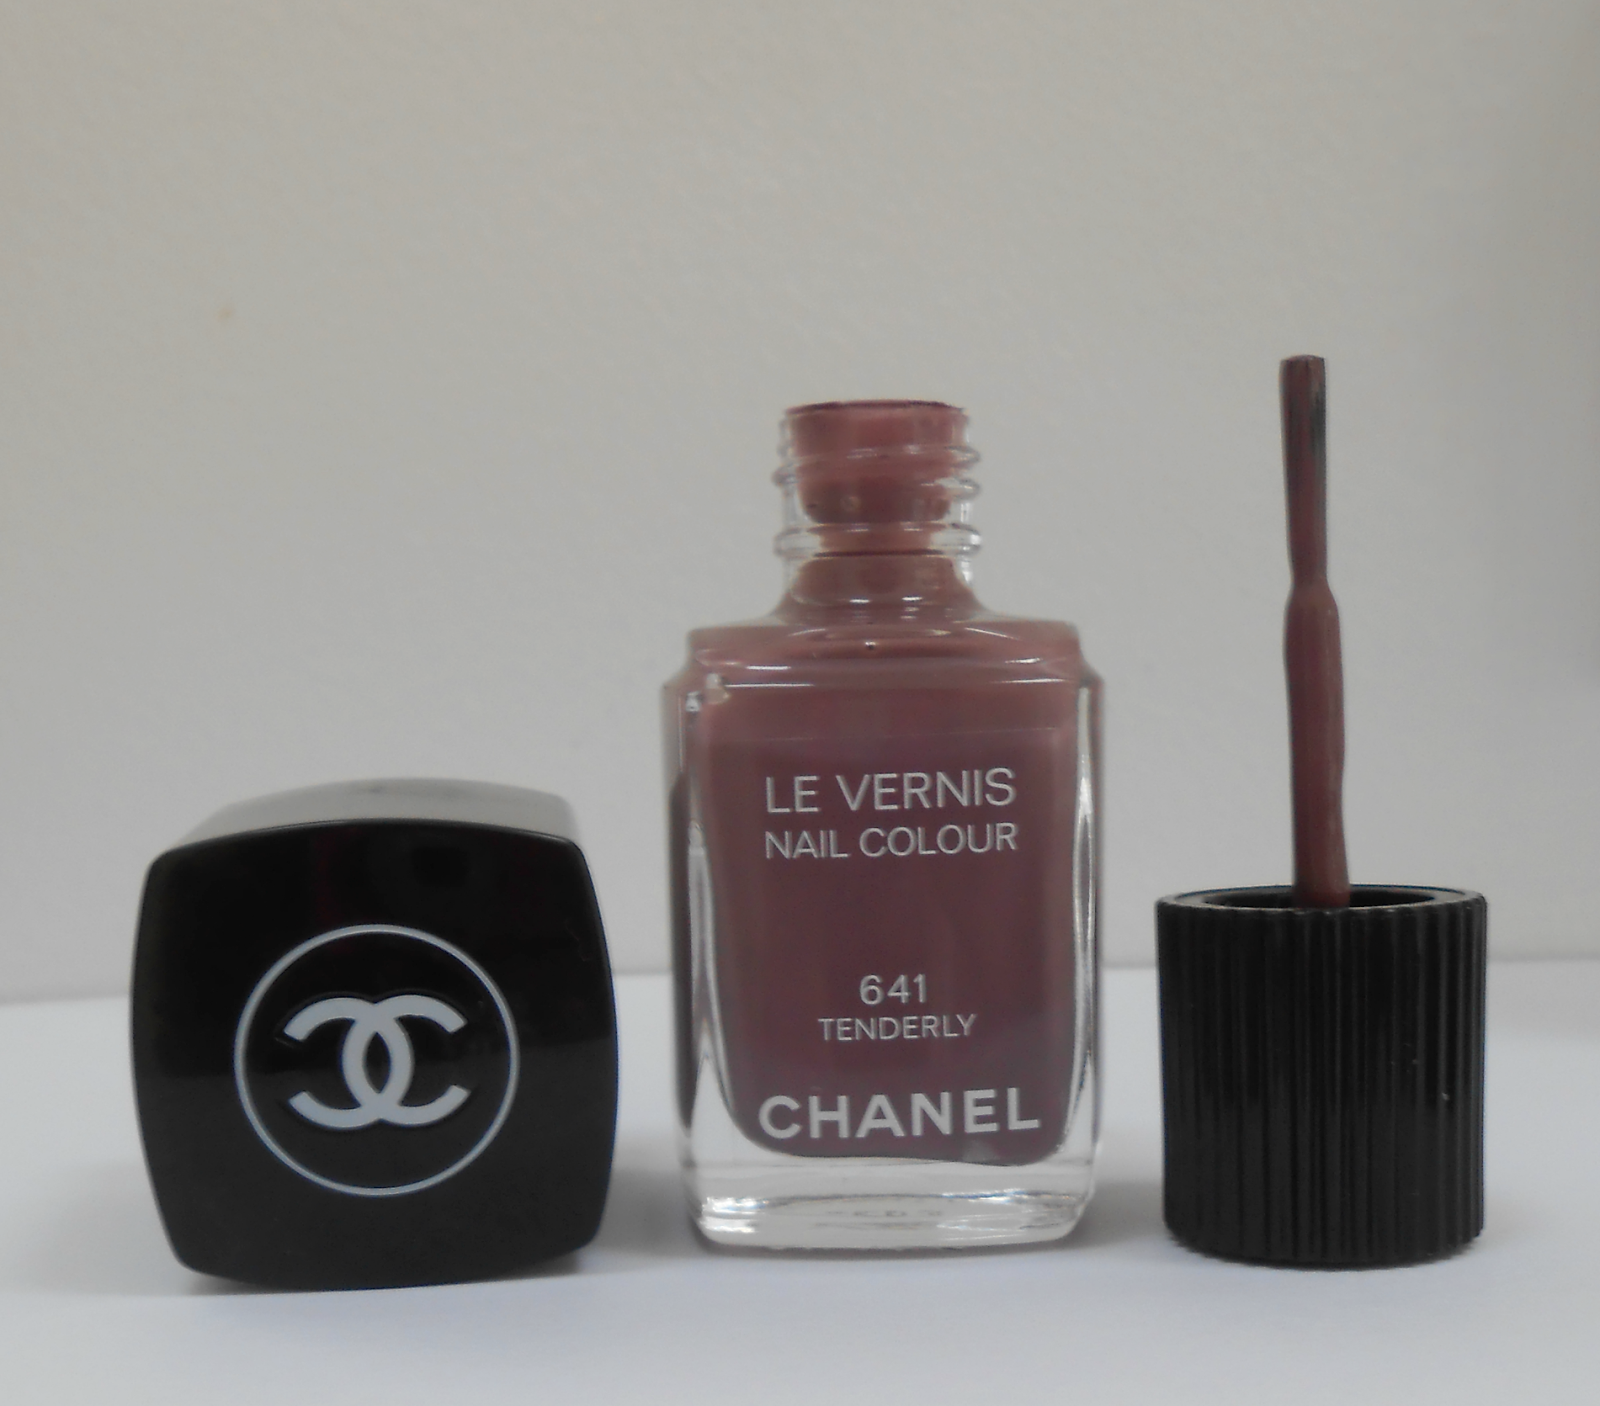 Chanel Le Vernis Nail Colour 641 Tenderly